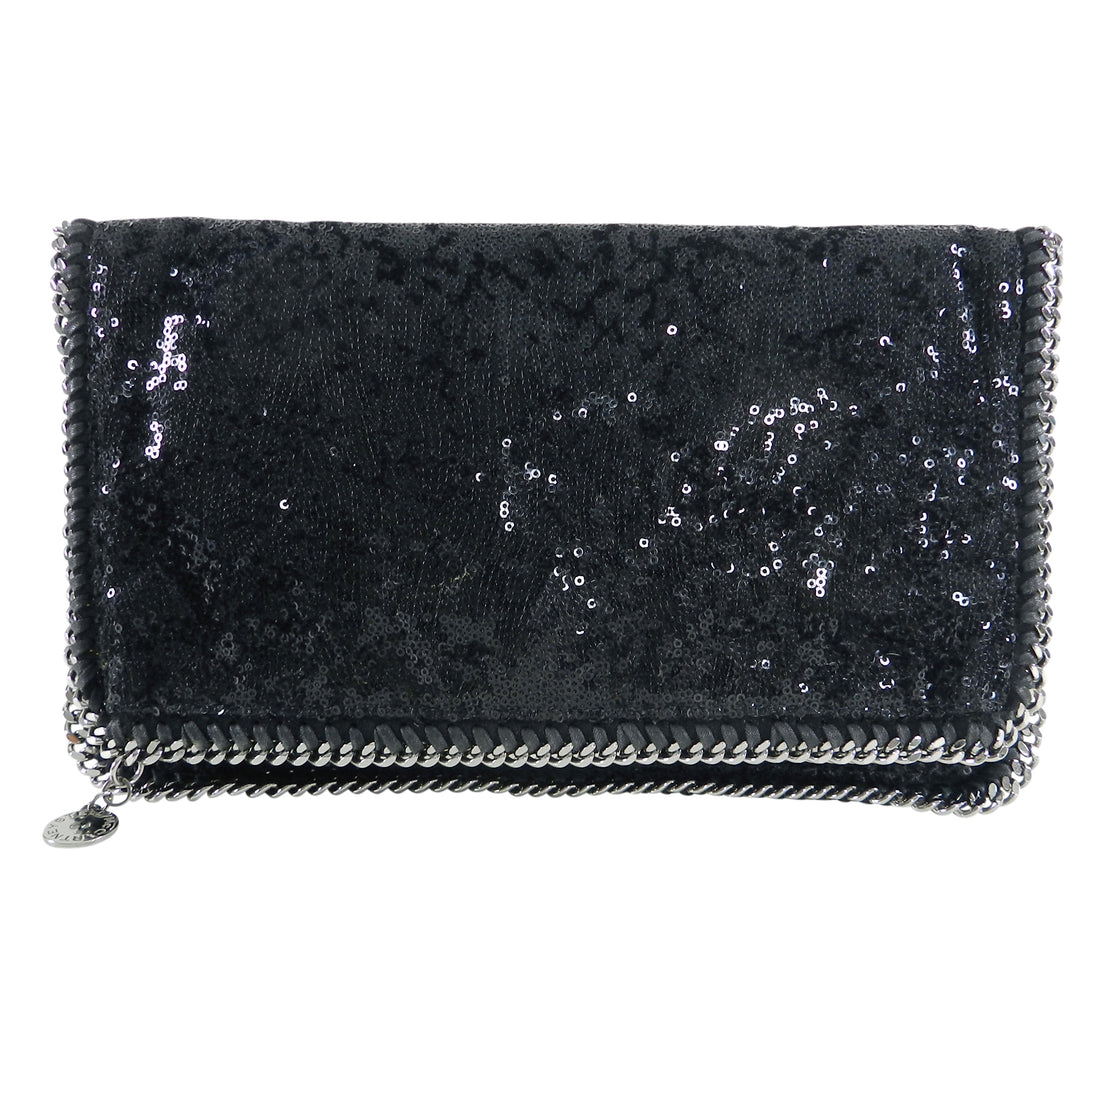 Stella McCartney Black Sequin Falabella Fold Over Clutch Bag